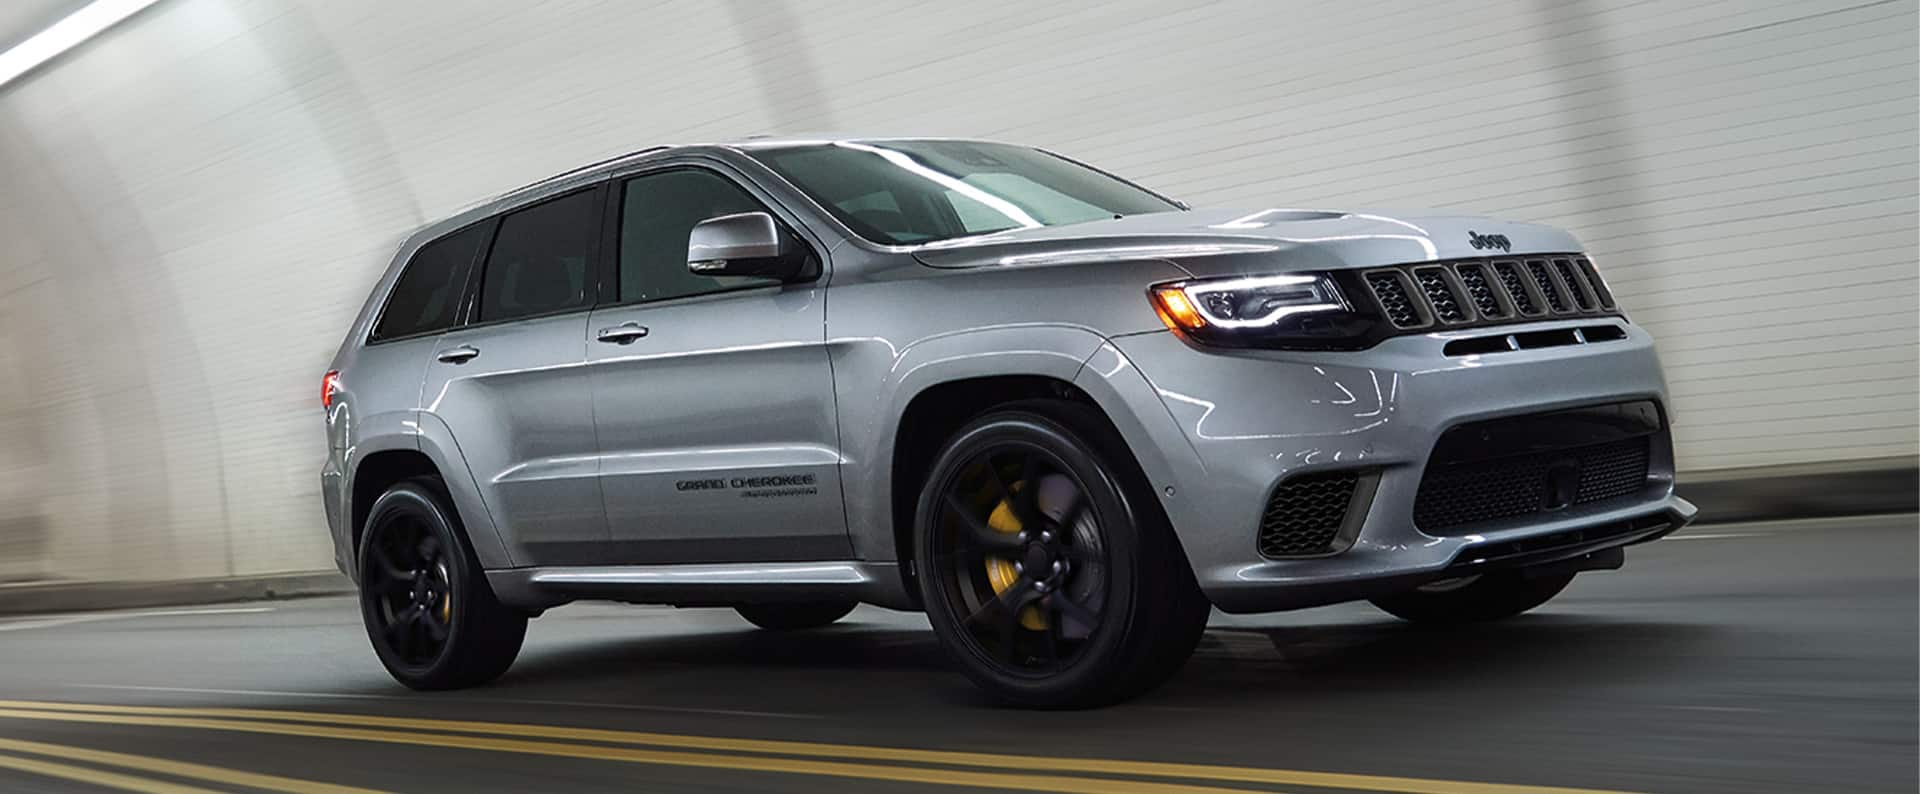 The 2021 Jeep Grand Cherokee Trackhawk being driven through a tunnel.